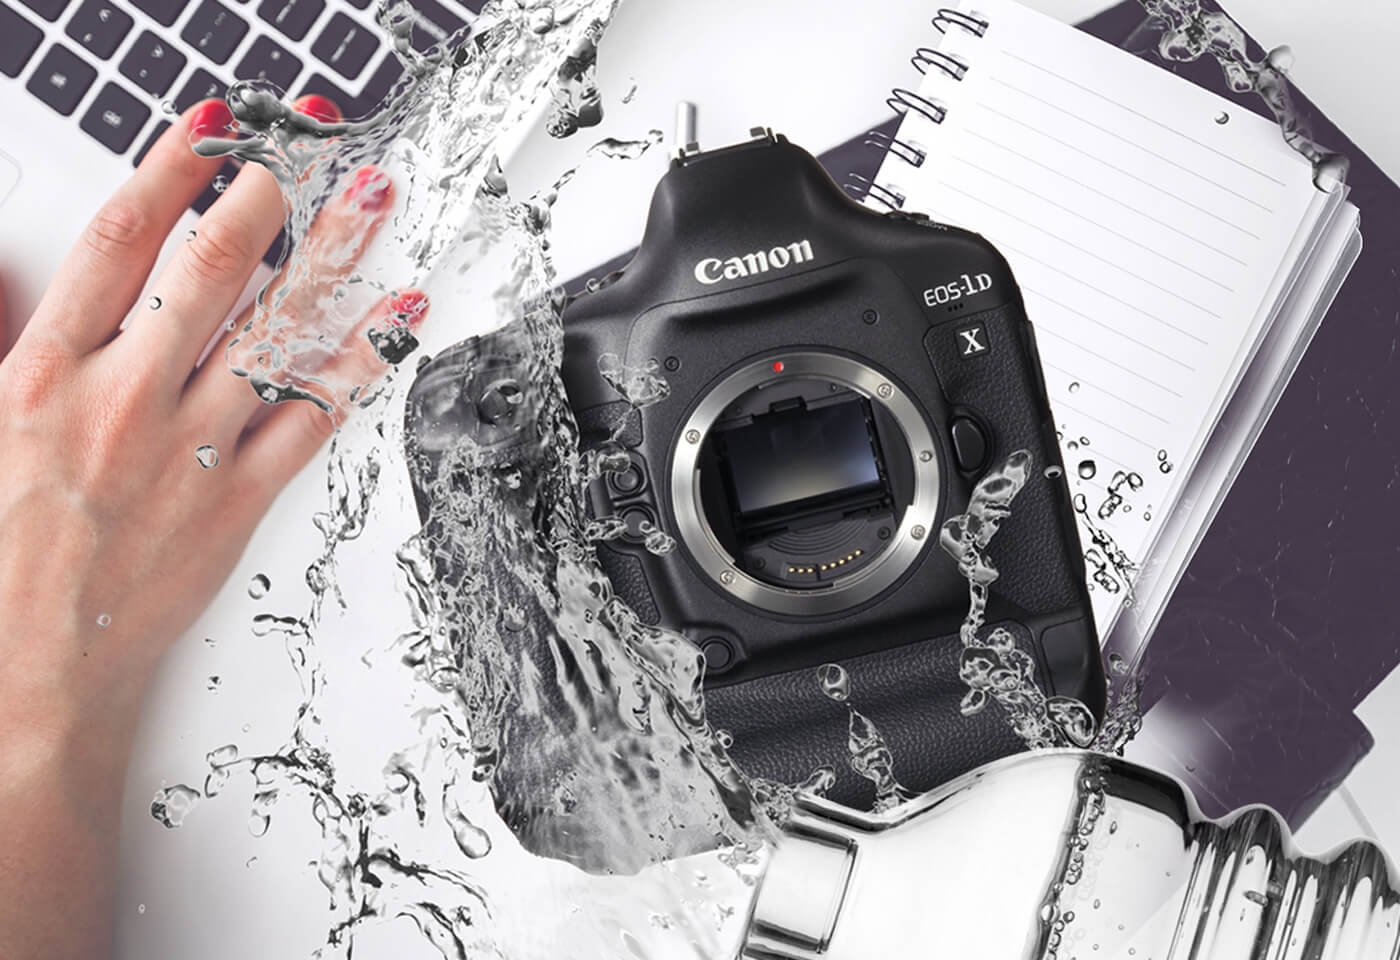 Water splashed over a Canon camera